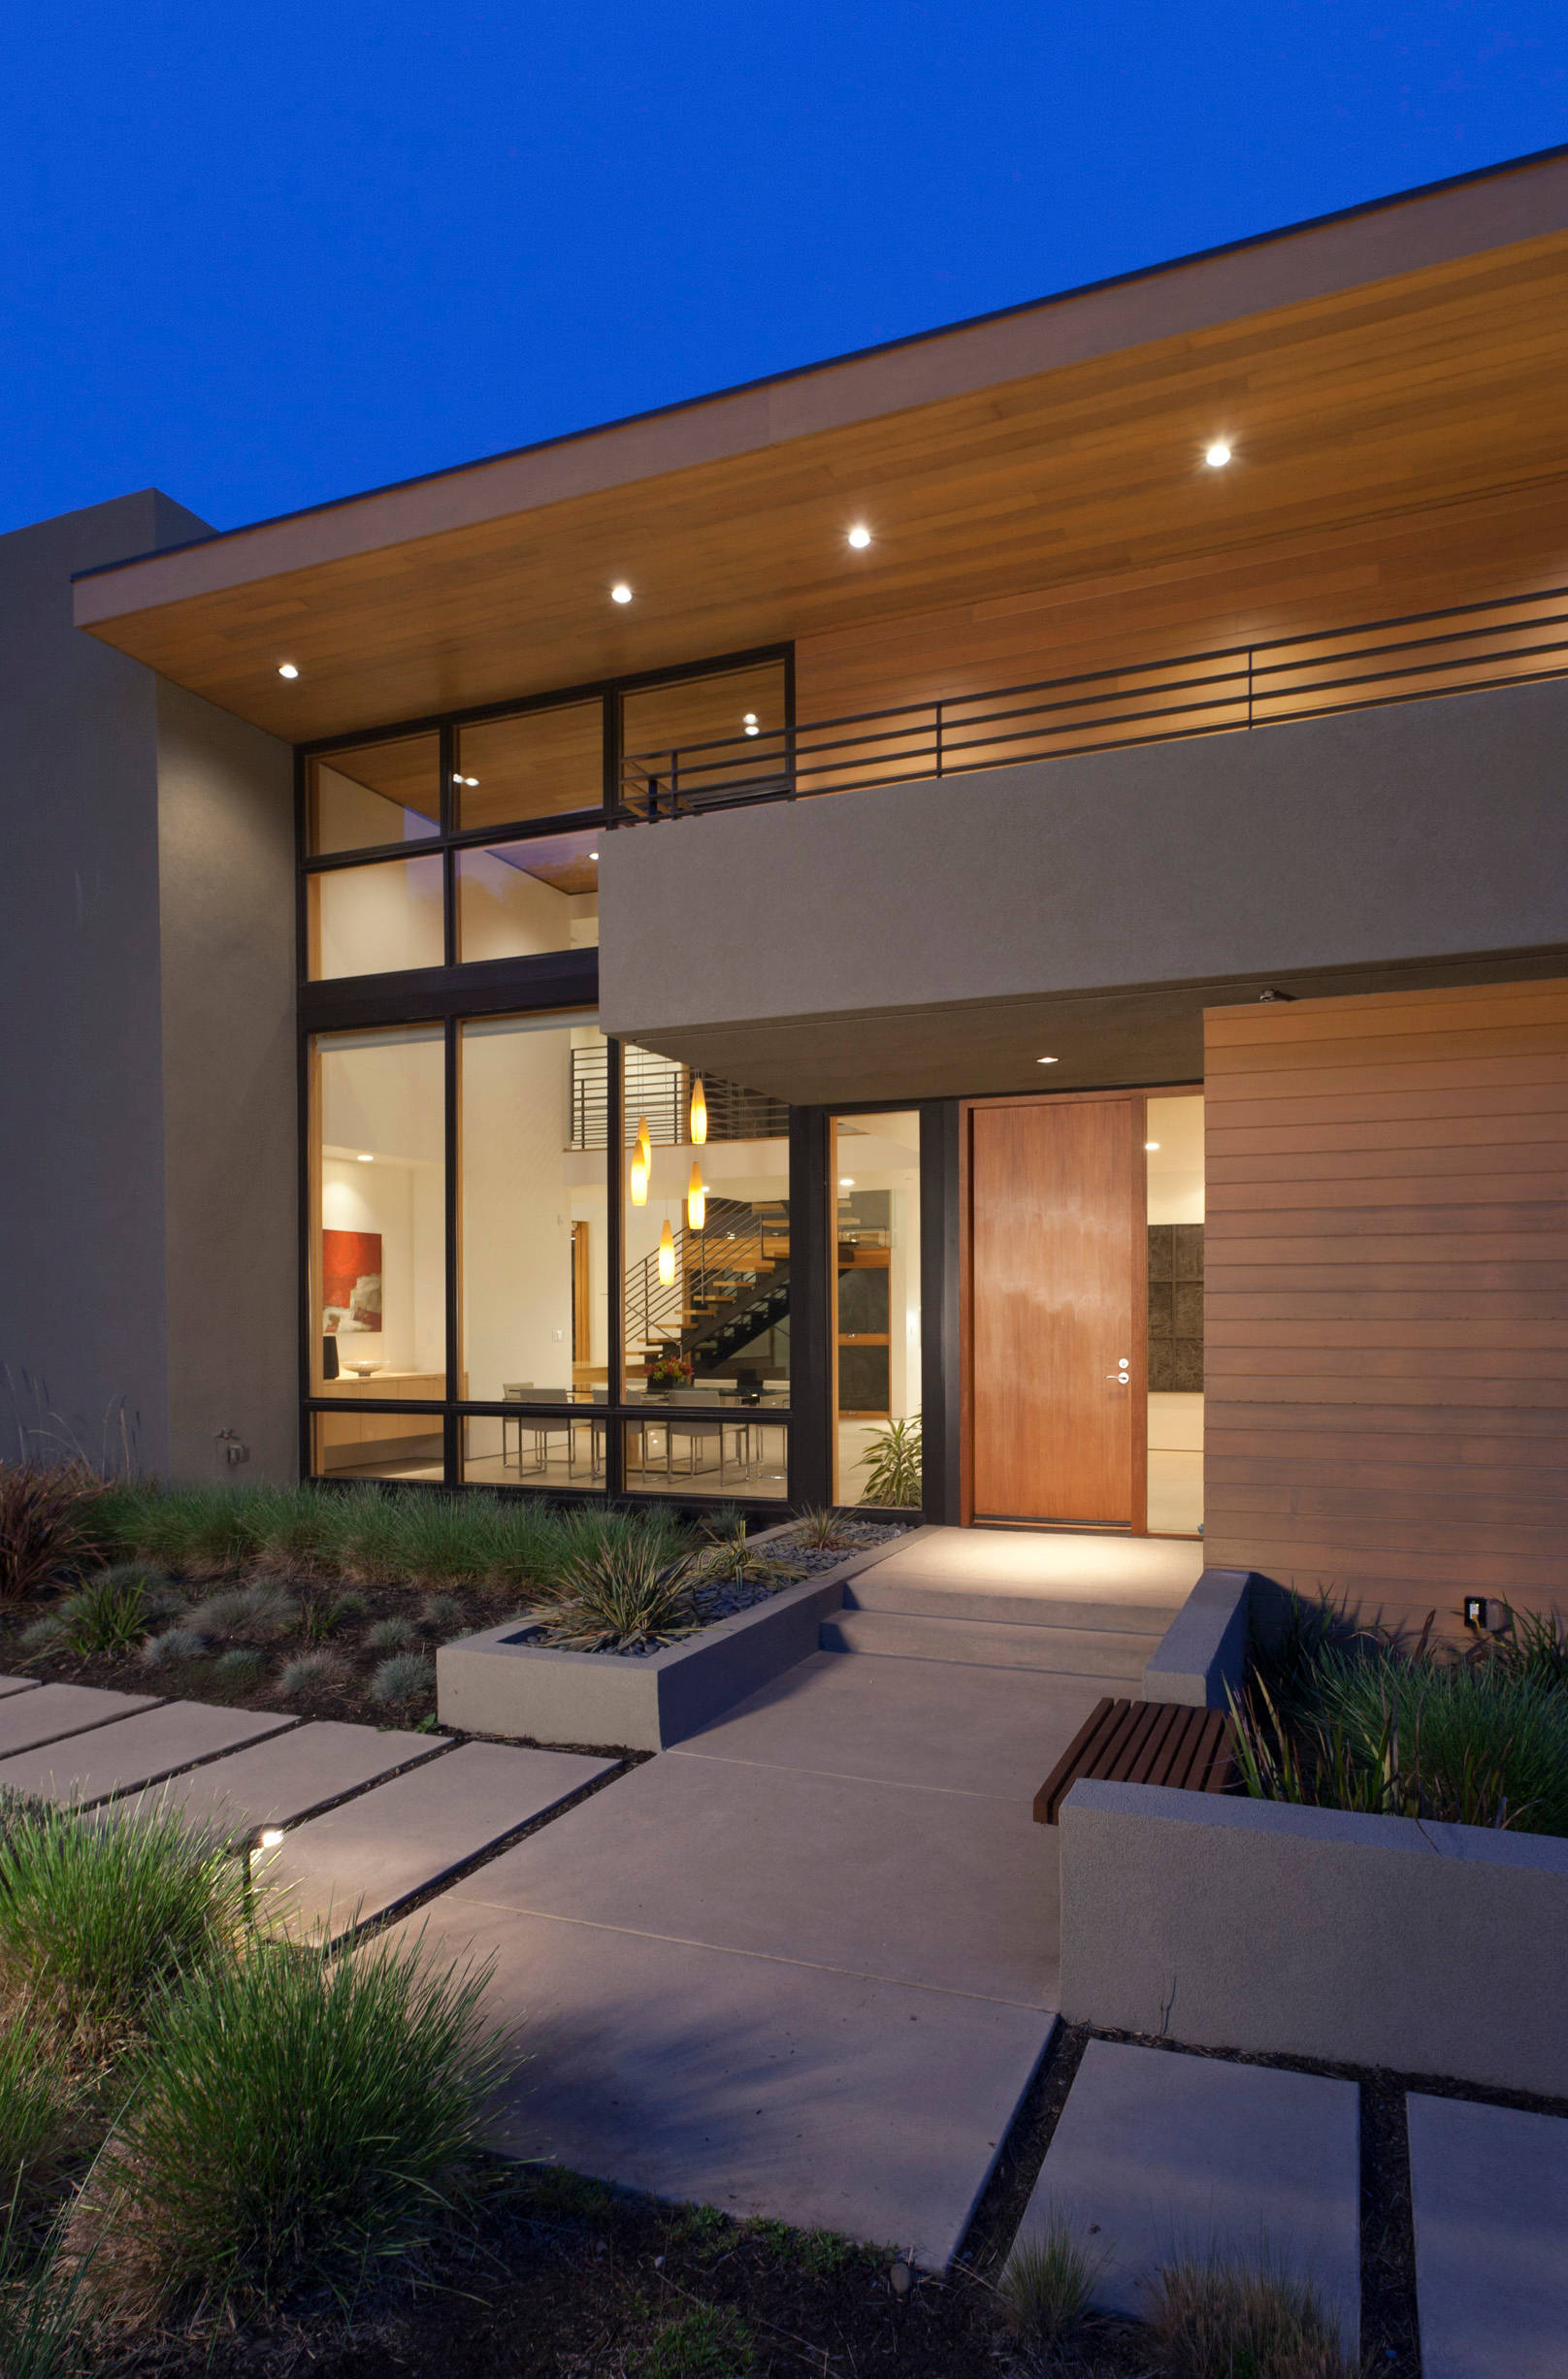 75 Beautiful Modern Exterior Home Pictures Ideas January 2021 Houzz